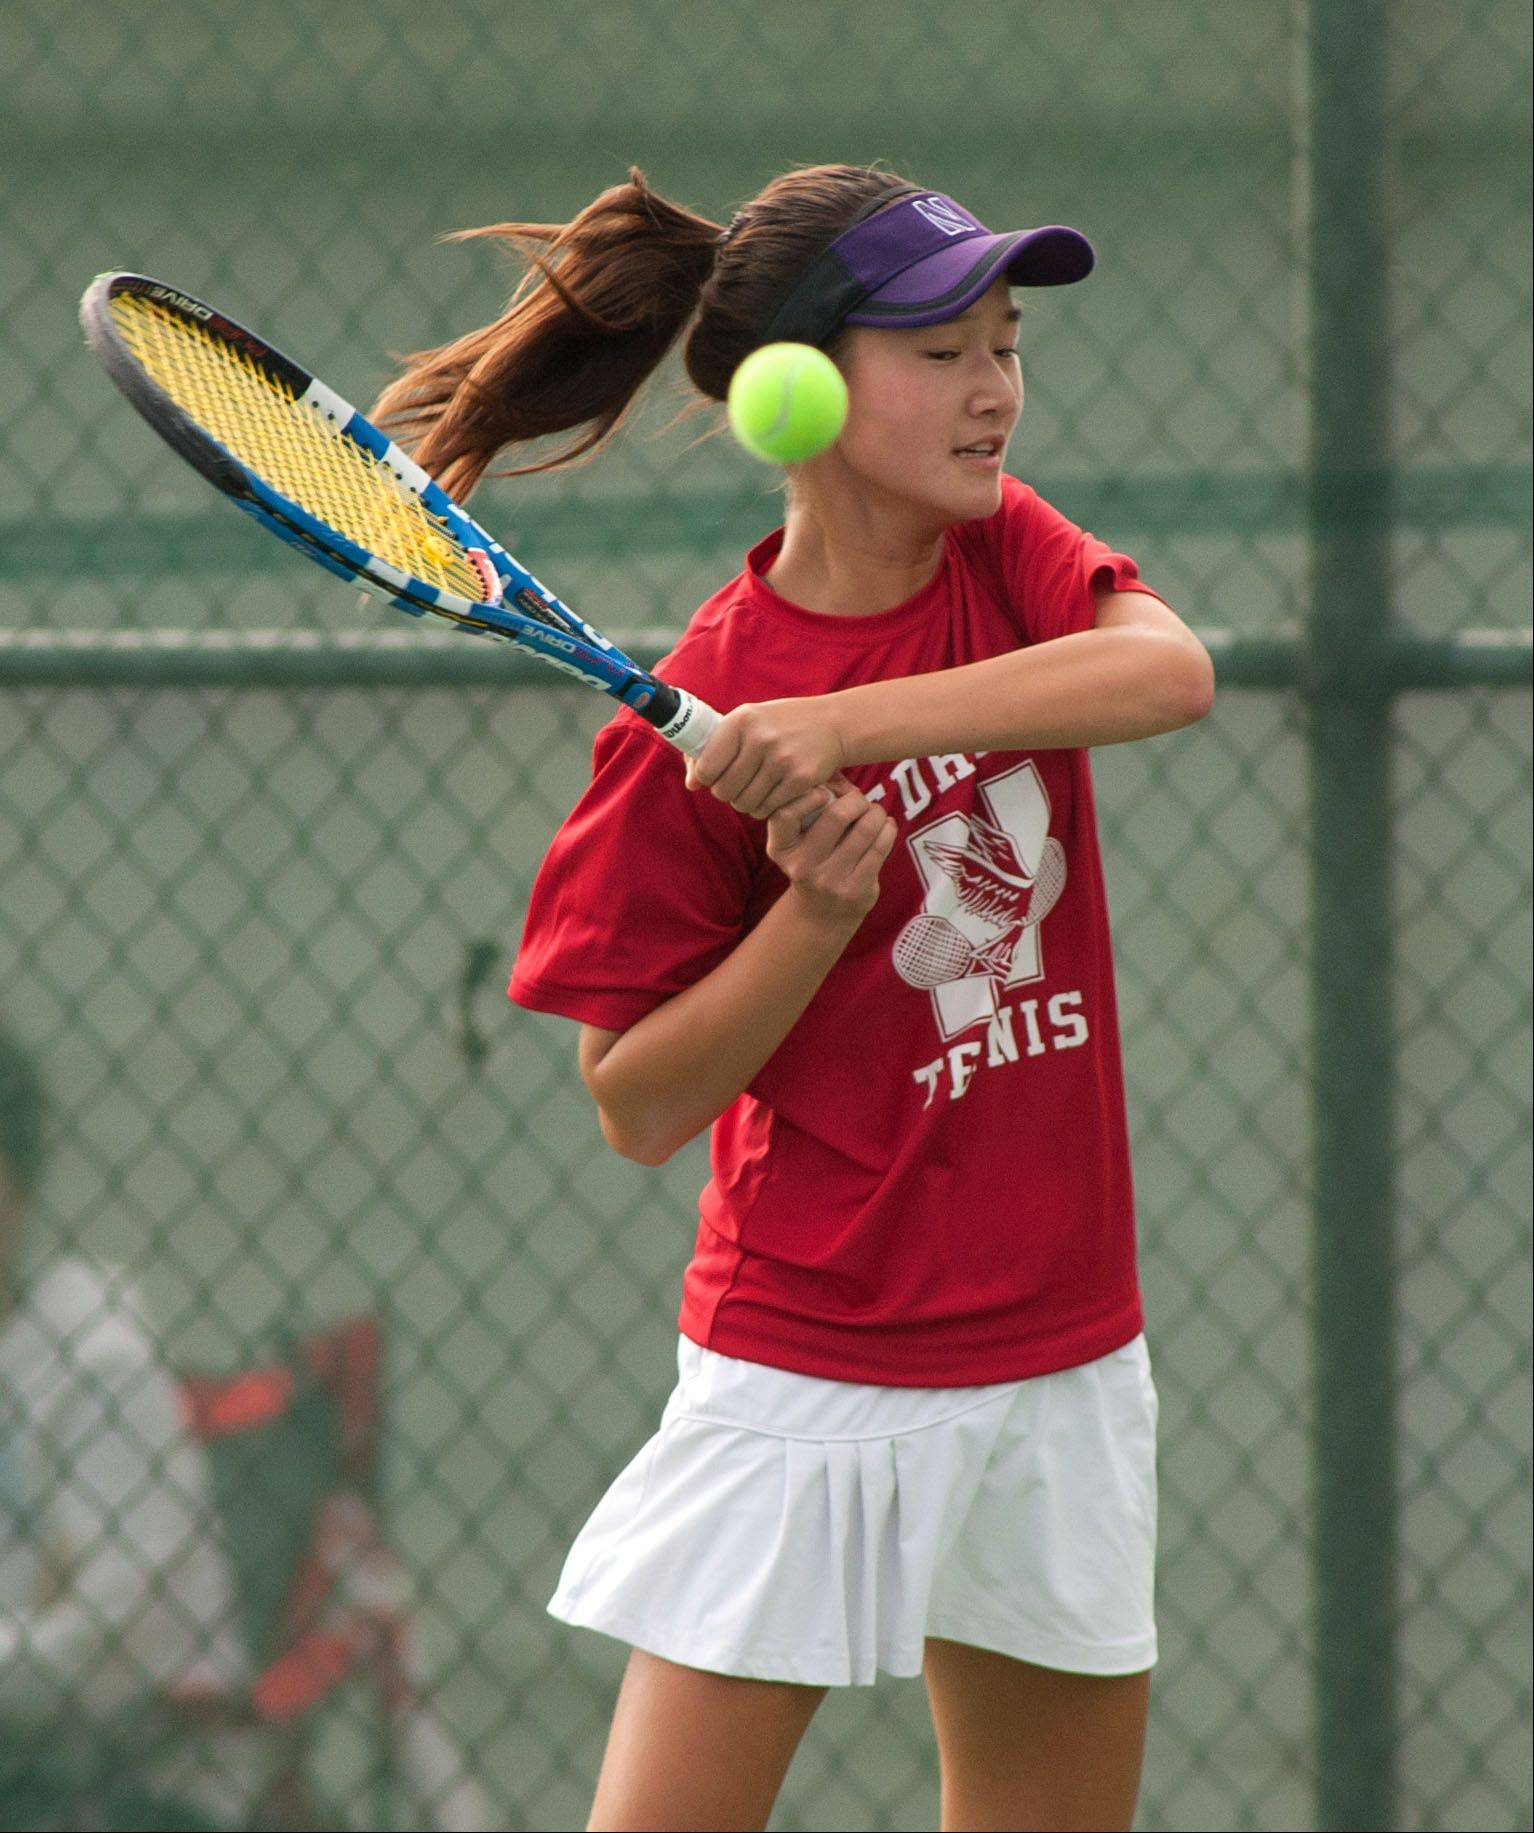 Naperville Central's Tiffany Chen returns a volley during the DuPage Valley girls tennis finals at Naperville Central.